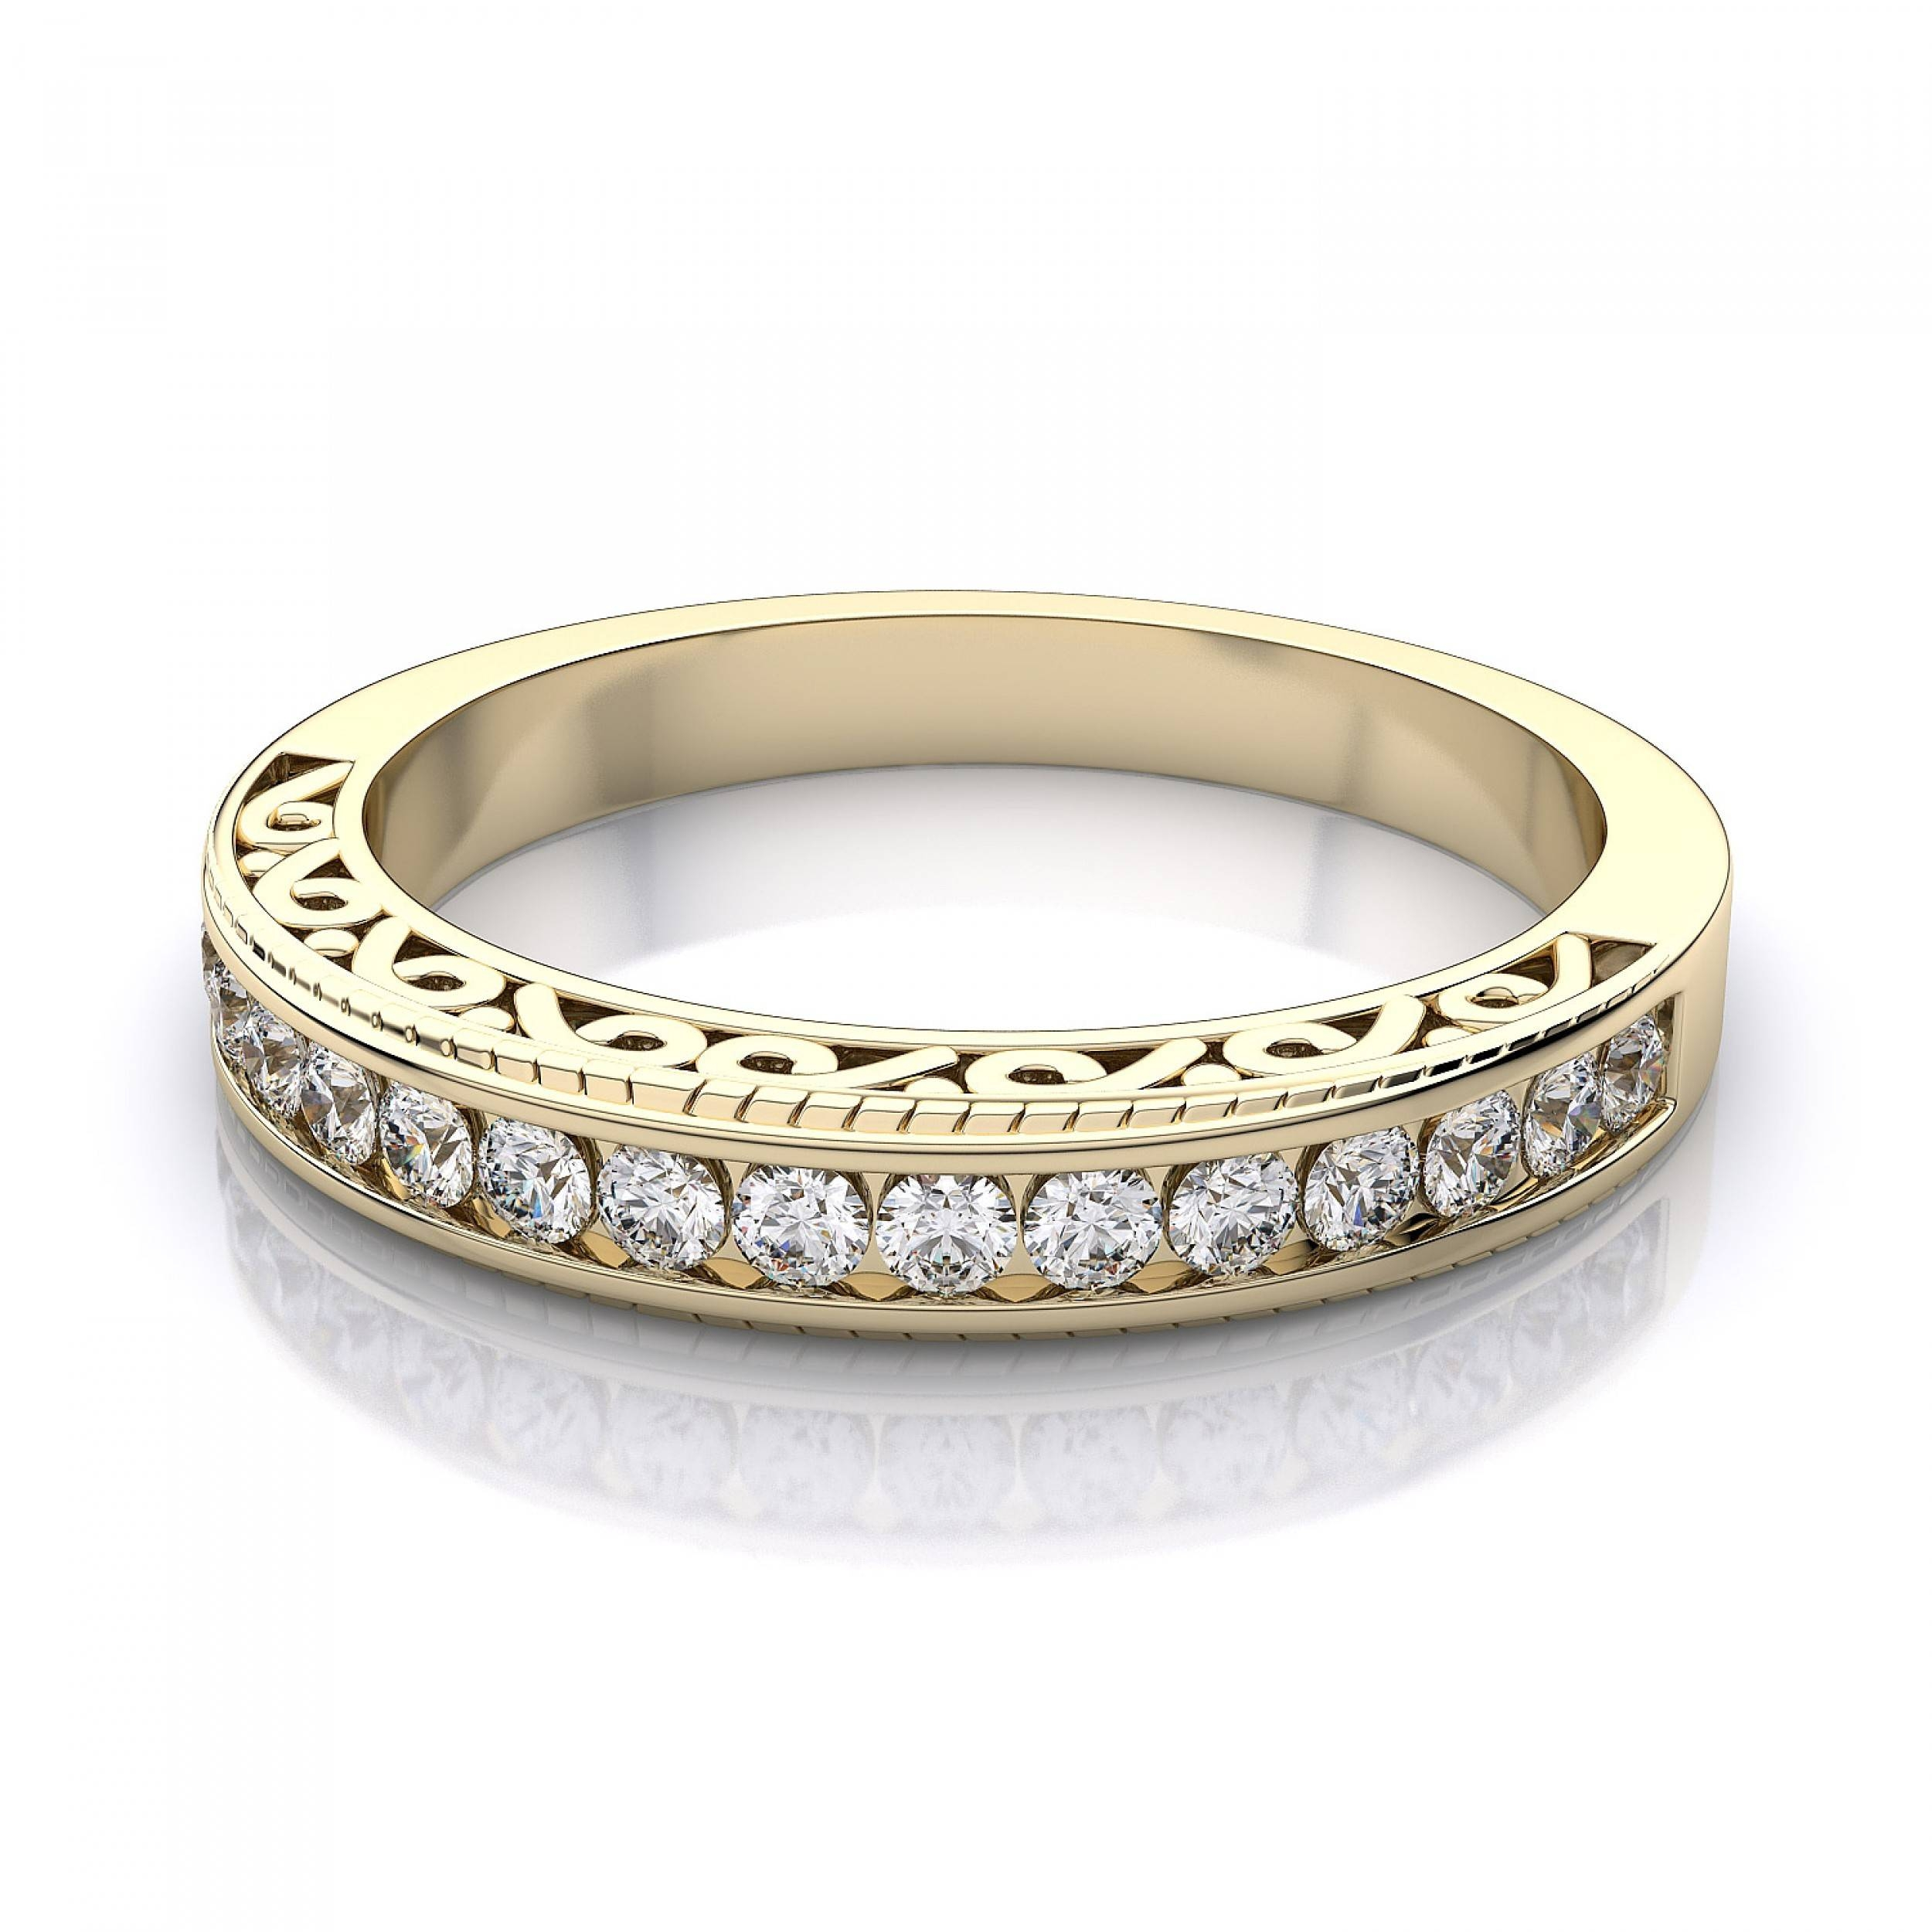 Set Vintage Diamond Wedding Band In 14K Yellow Gold I1 I Regarding Classic Gold Wedding Rings (View 14 of 15)